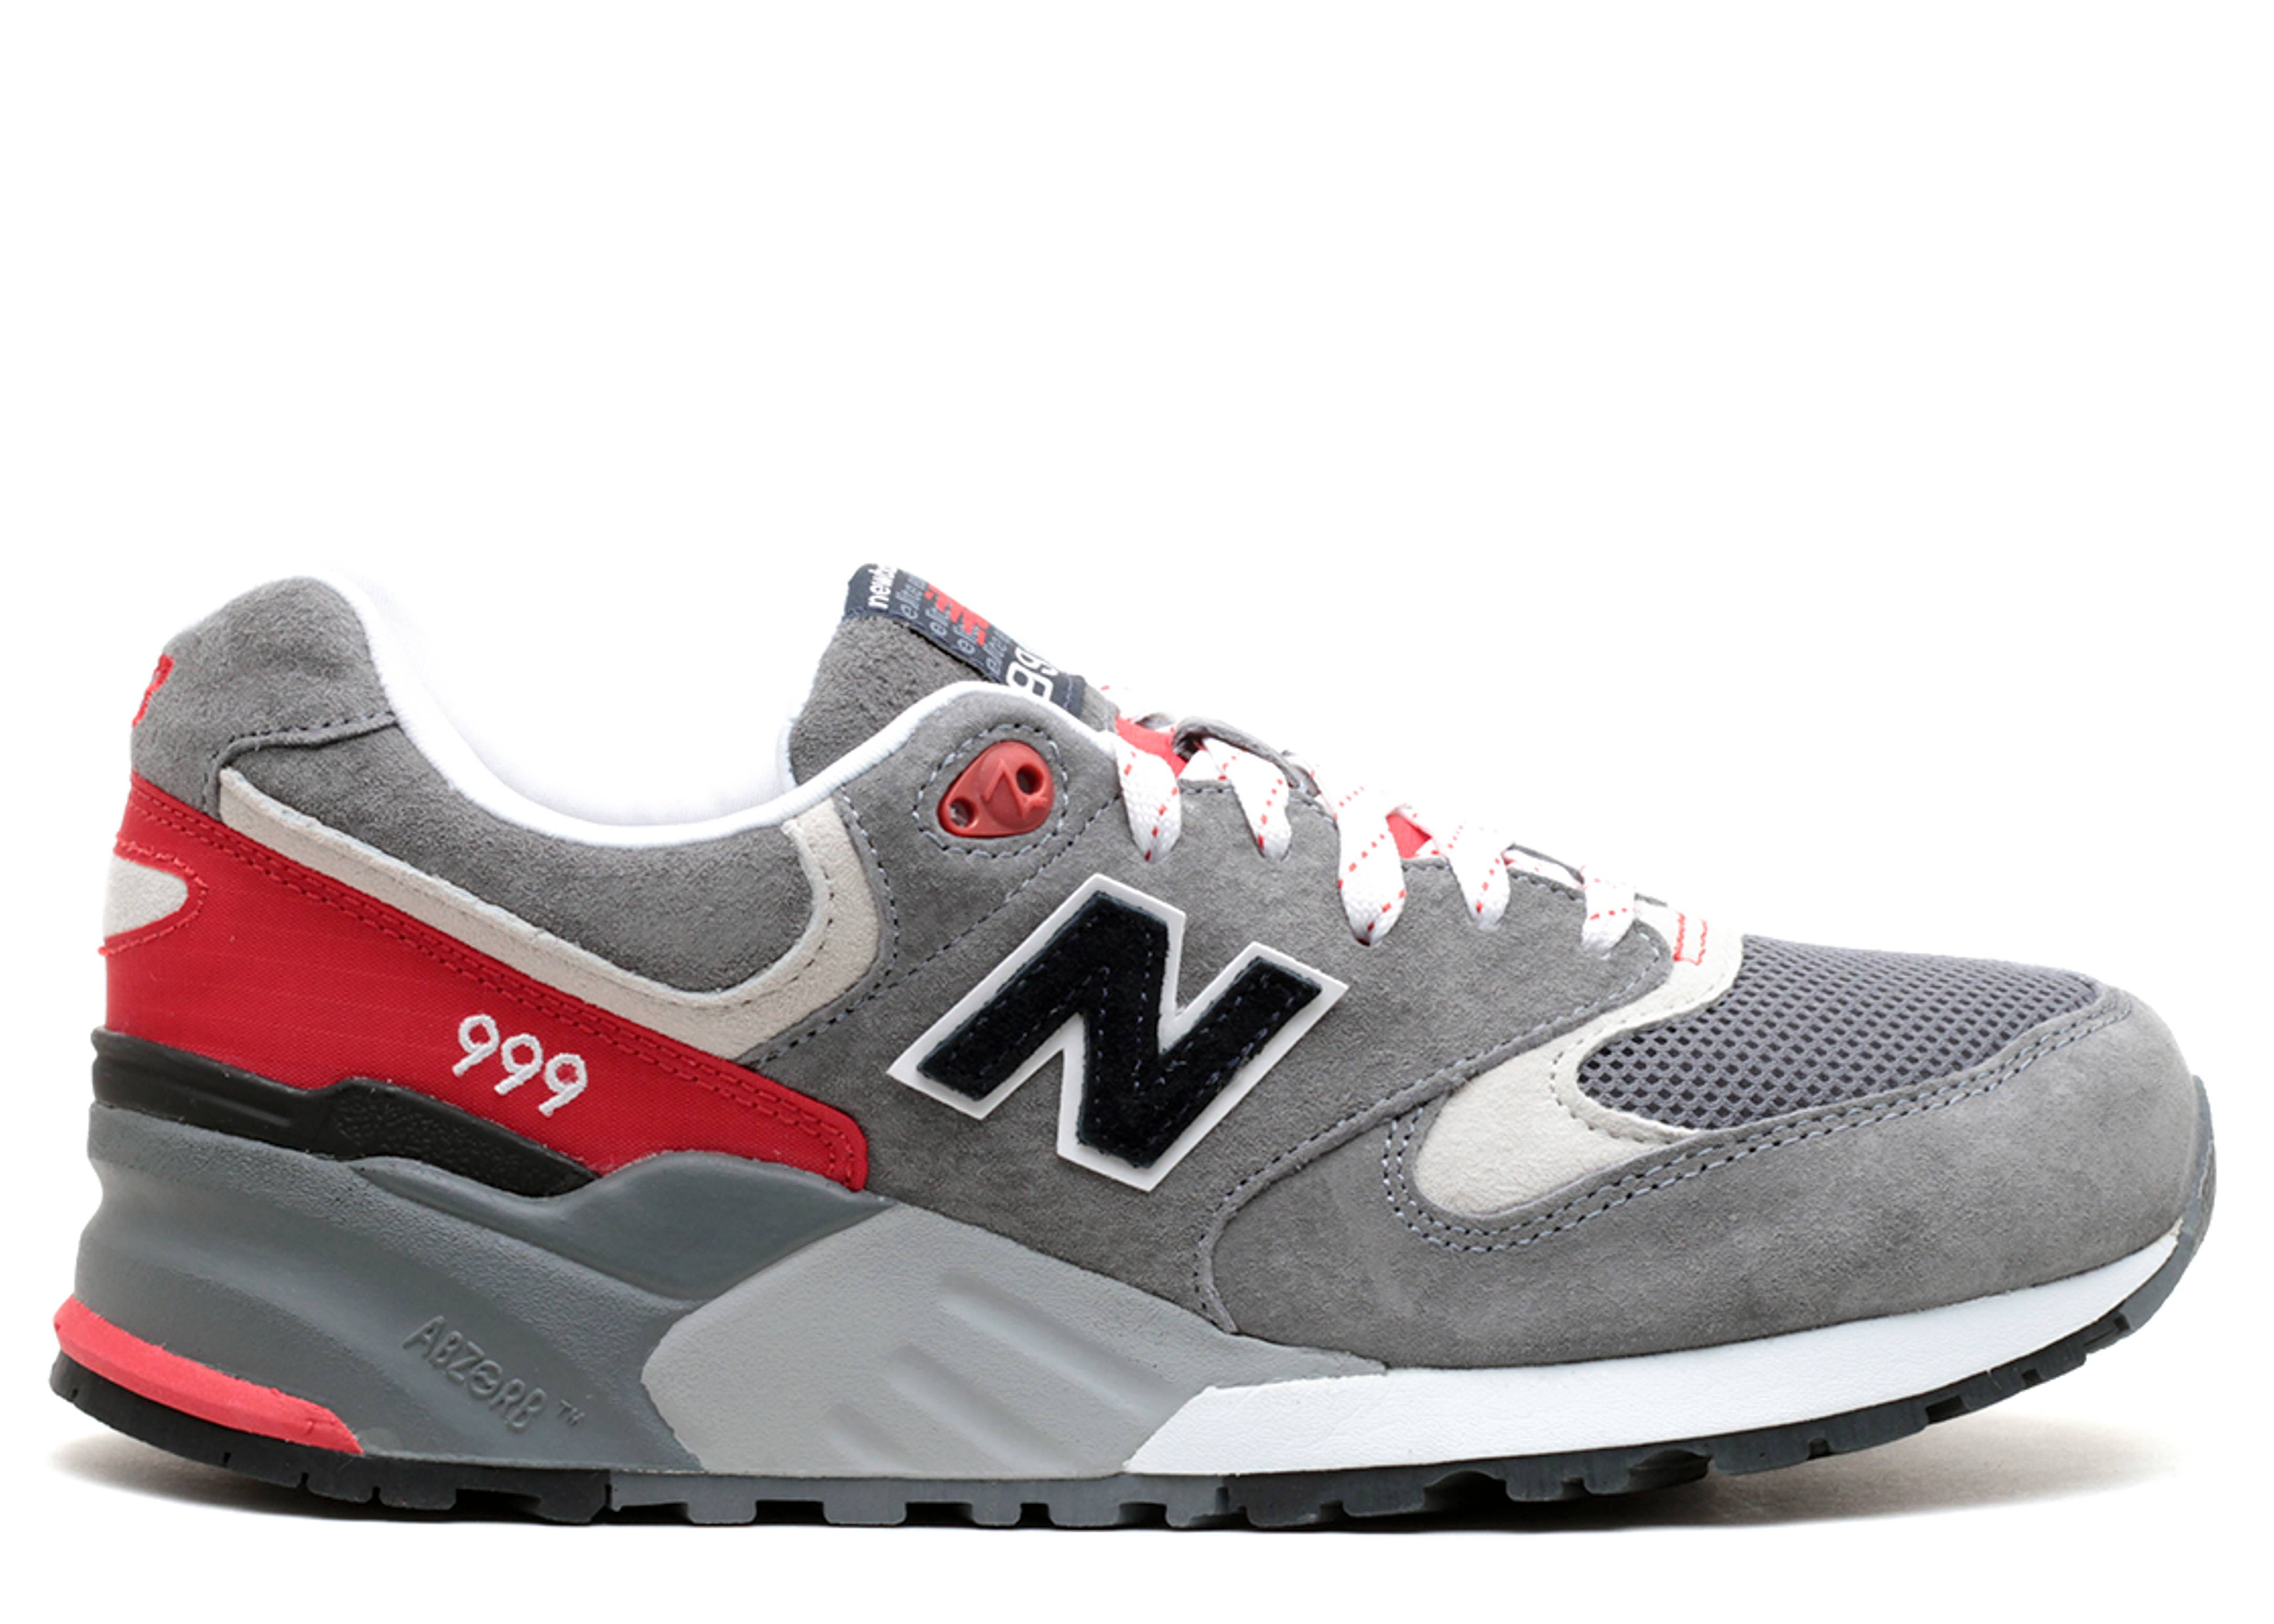 nouveau concept a3c87 45dd3 Ml999 - New Balance - ml999cra - grey/red | Flight Club